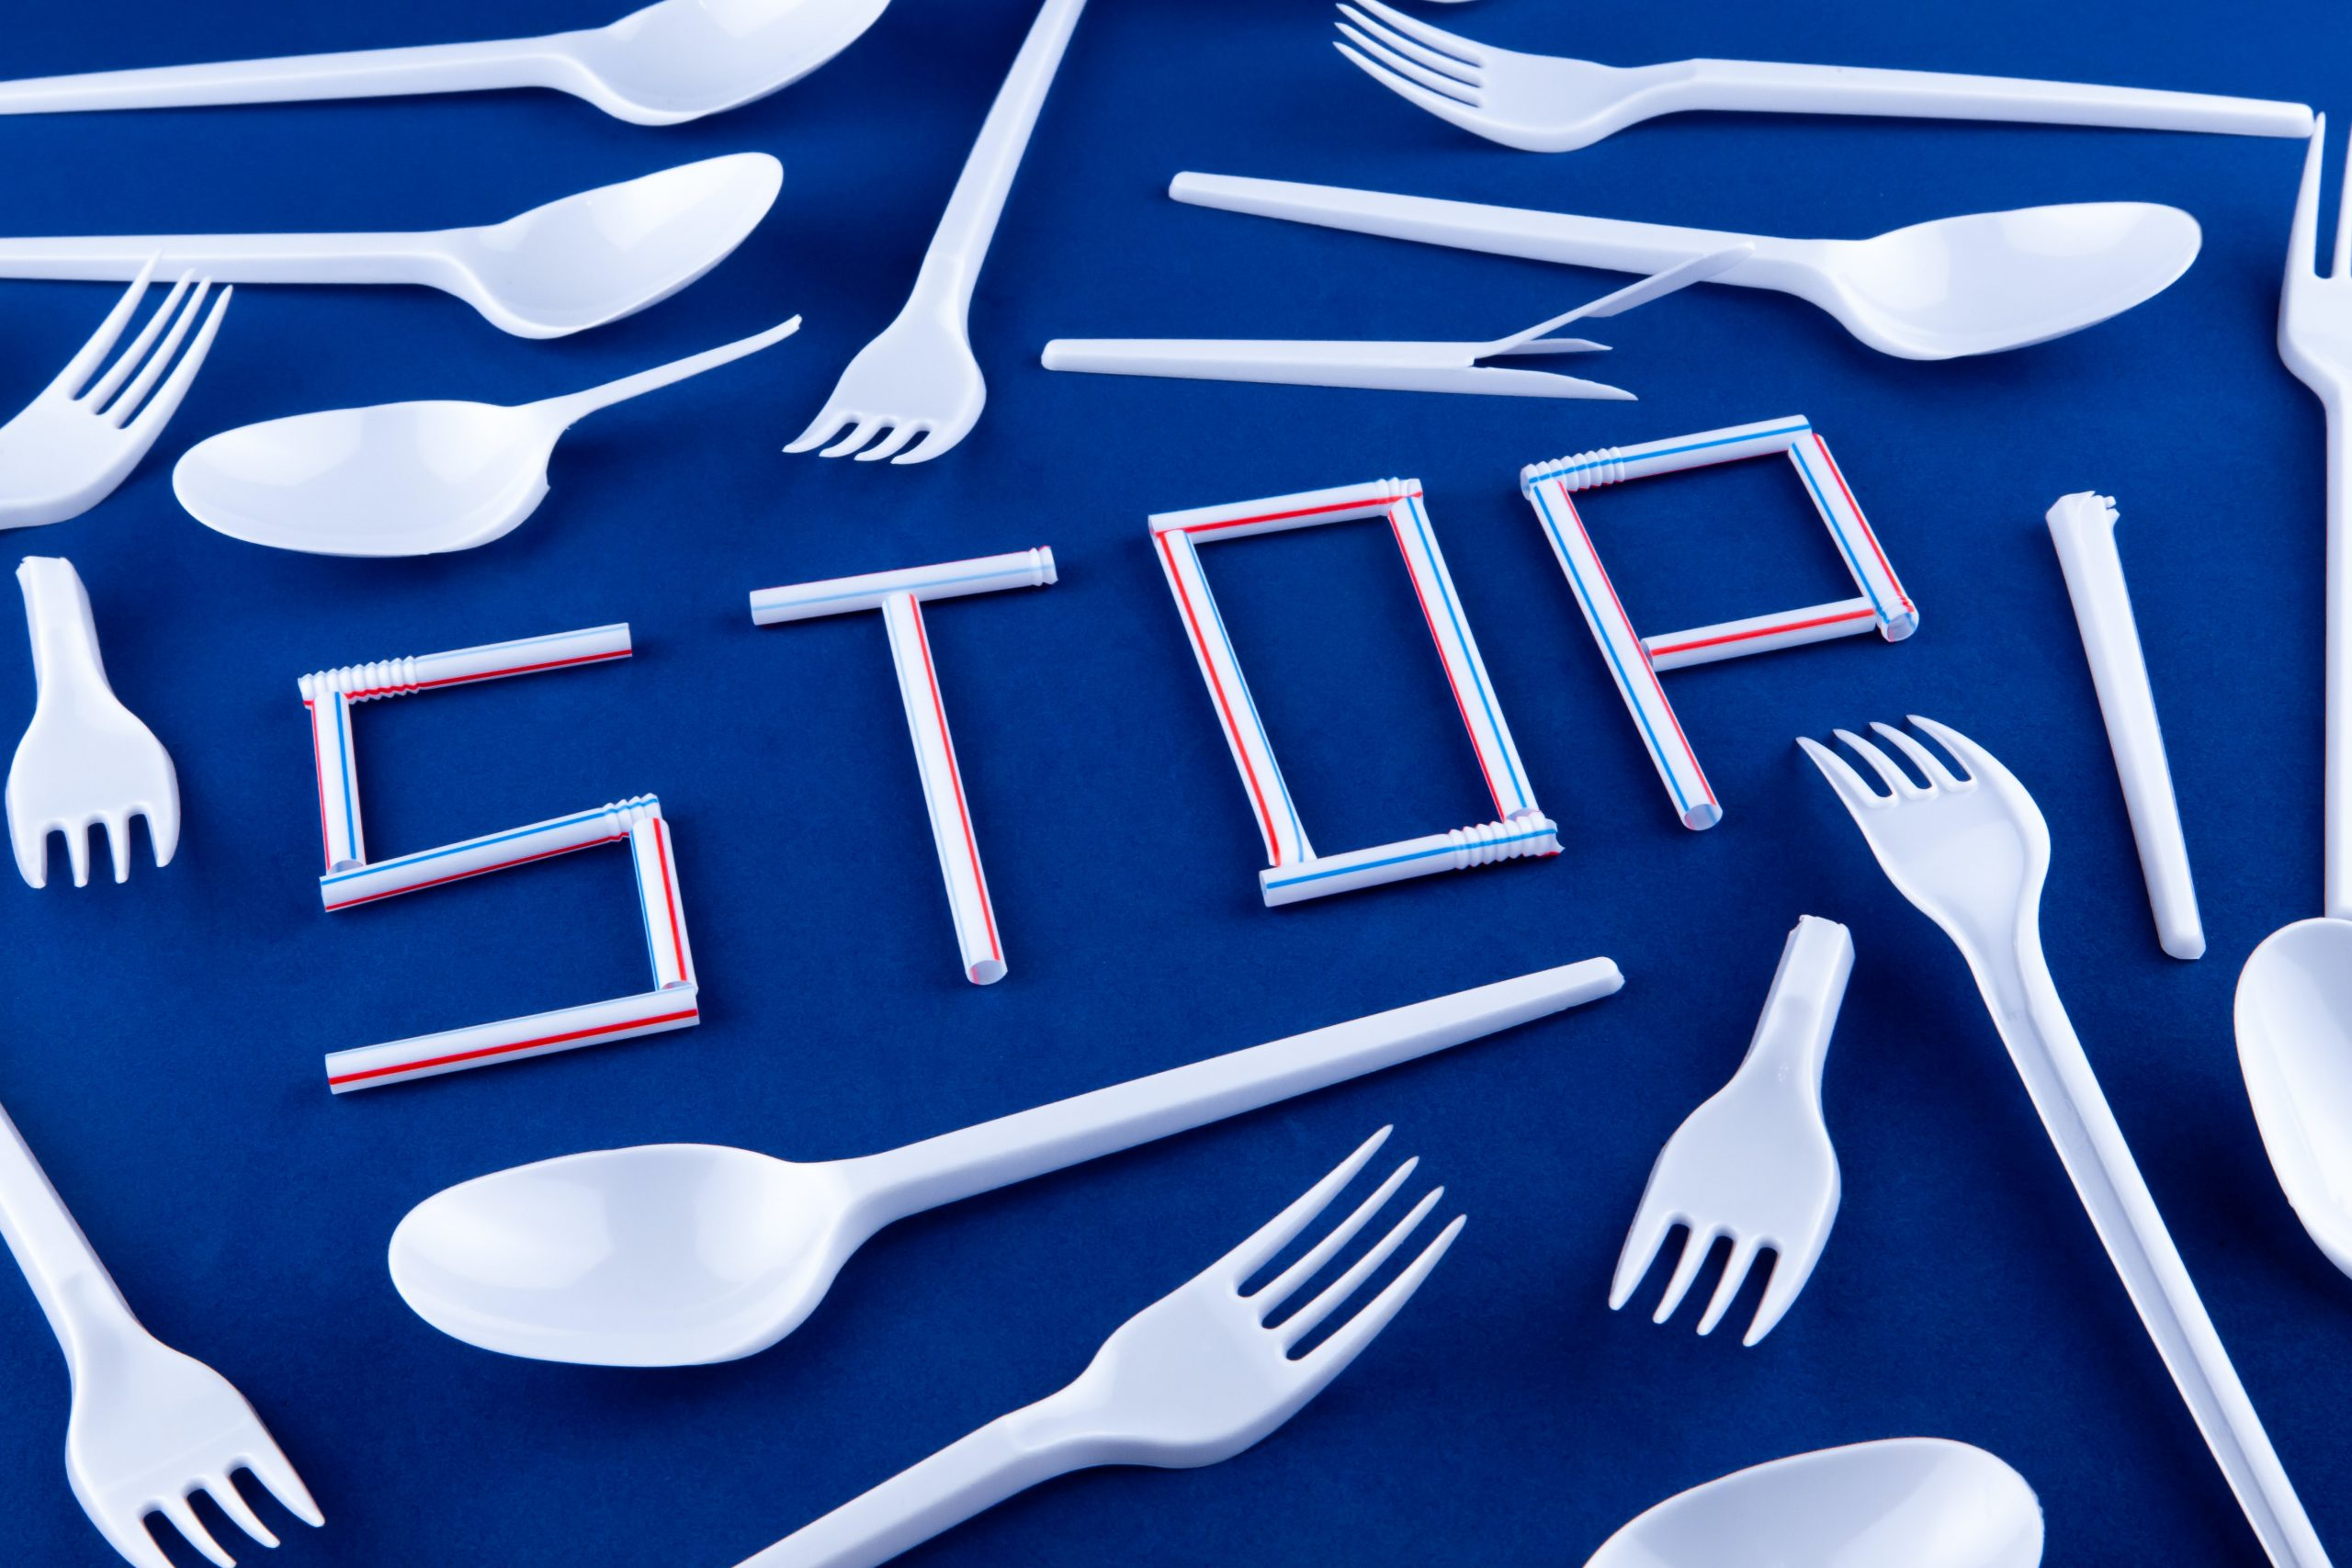 Plastic pollution, take-out cutlery